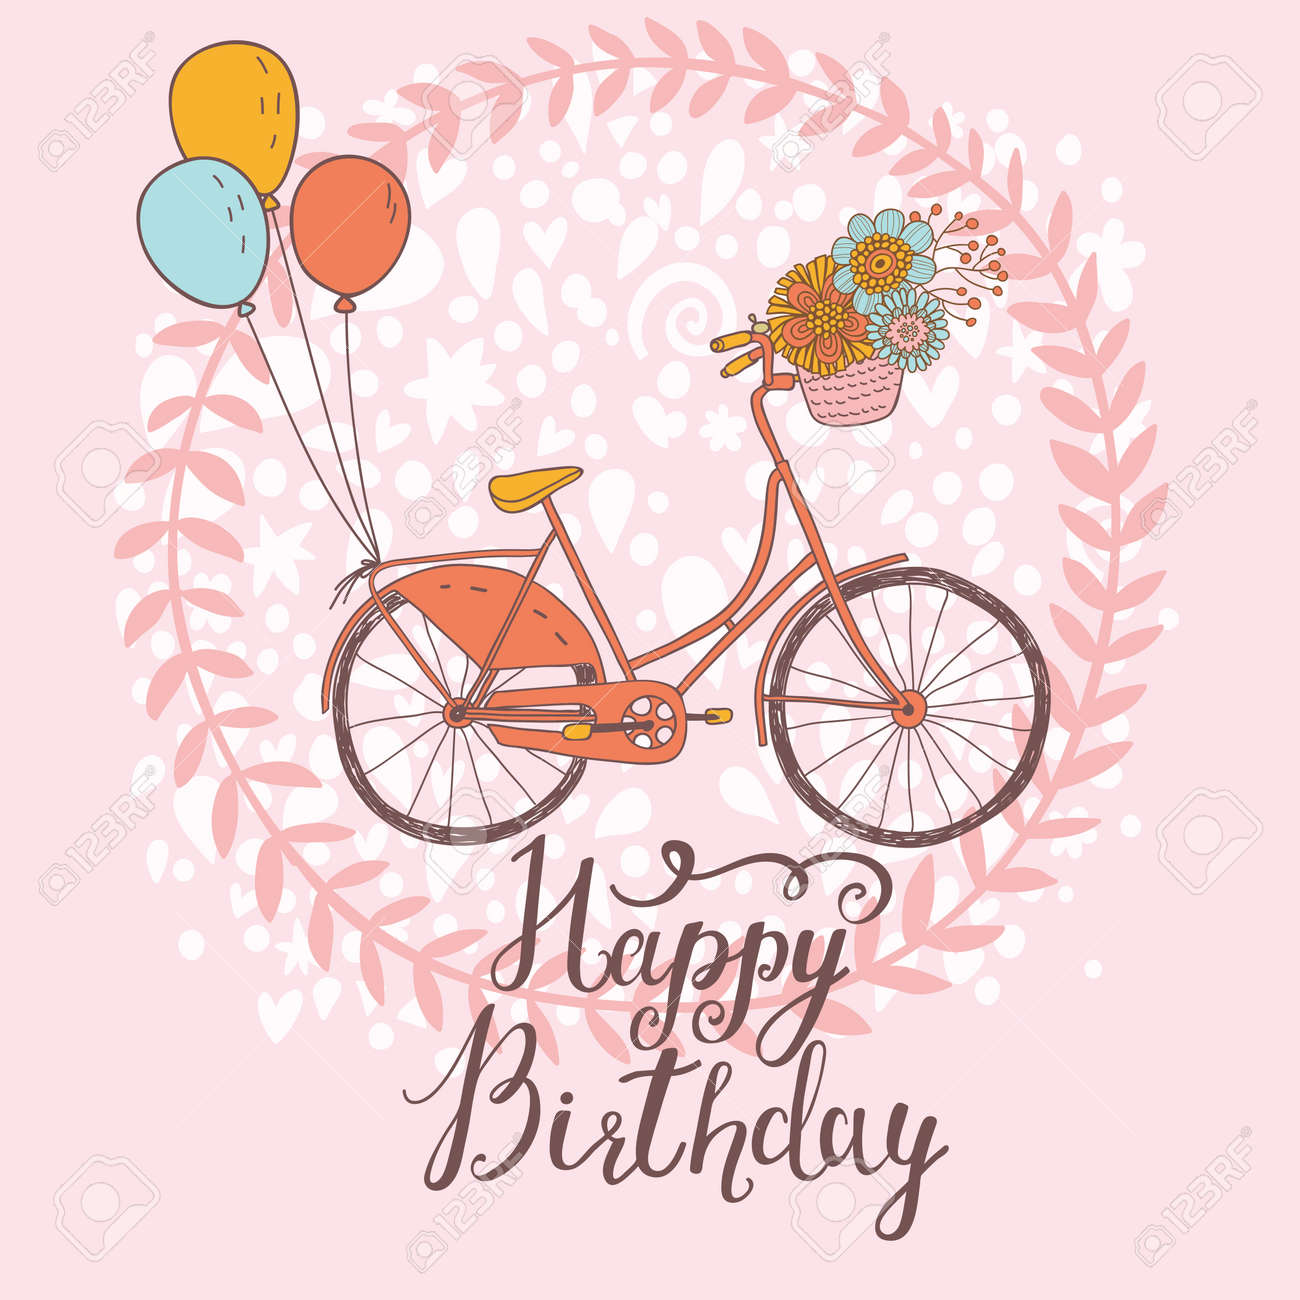 Happy birthday card in bright colors with bicycle floral wreath happy birthday card in bright colors with bicycle floral wreath air balloons and flowers dhlflorist Choice Image